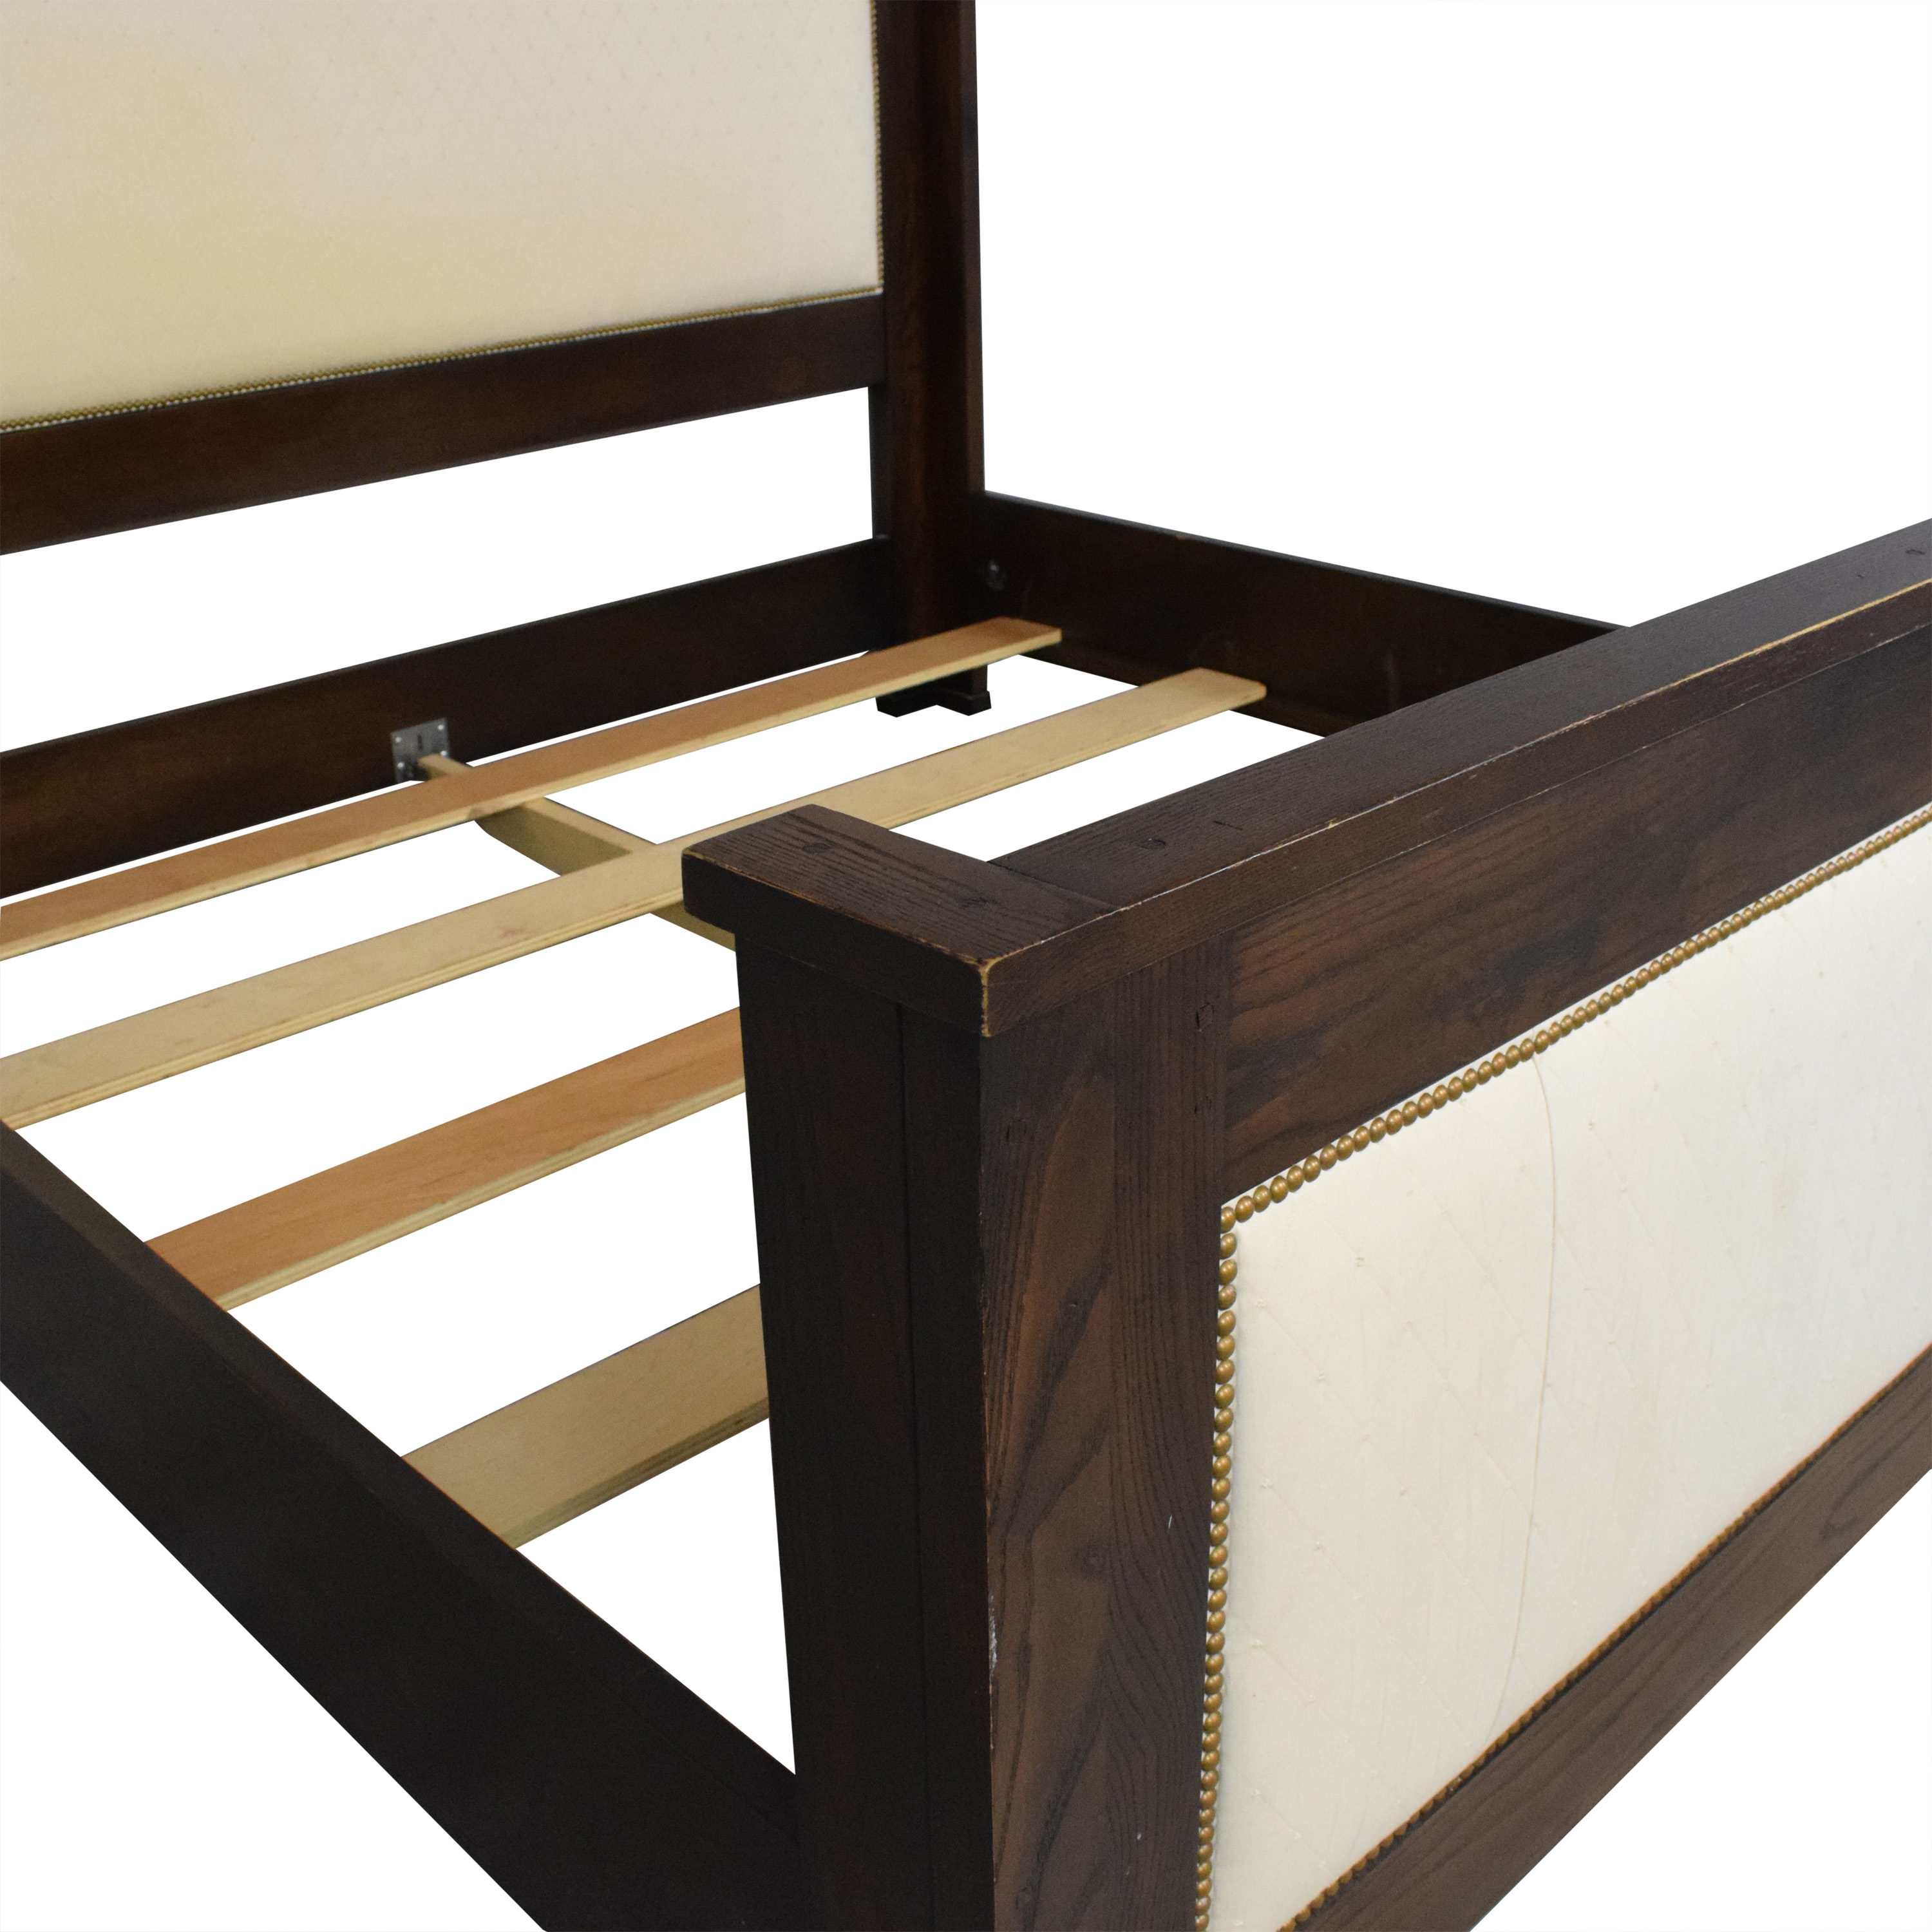 Hickory Chair Hickory Chair Upholstered King Bed for sale